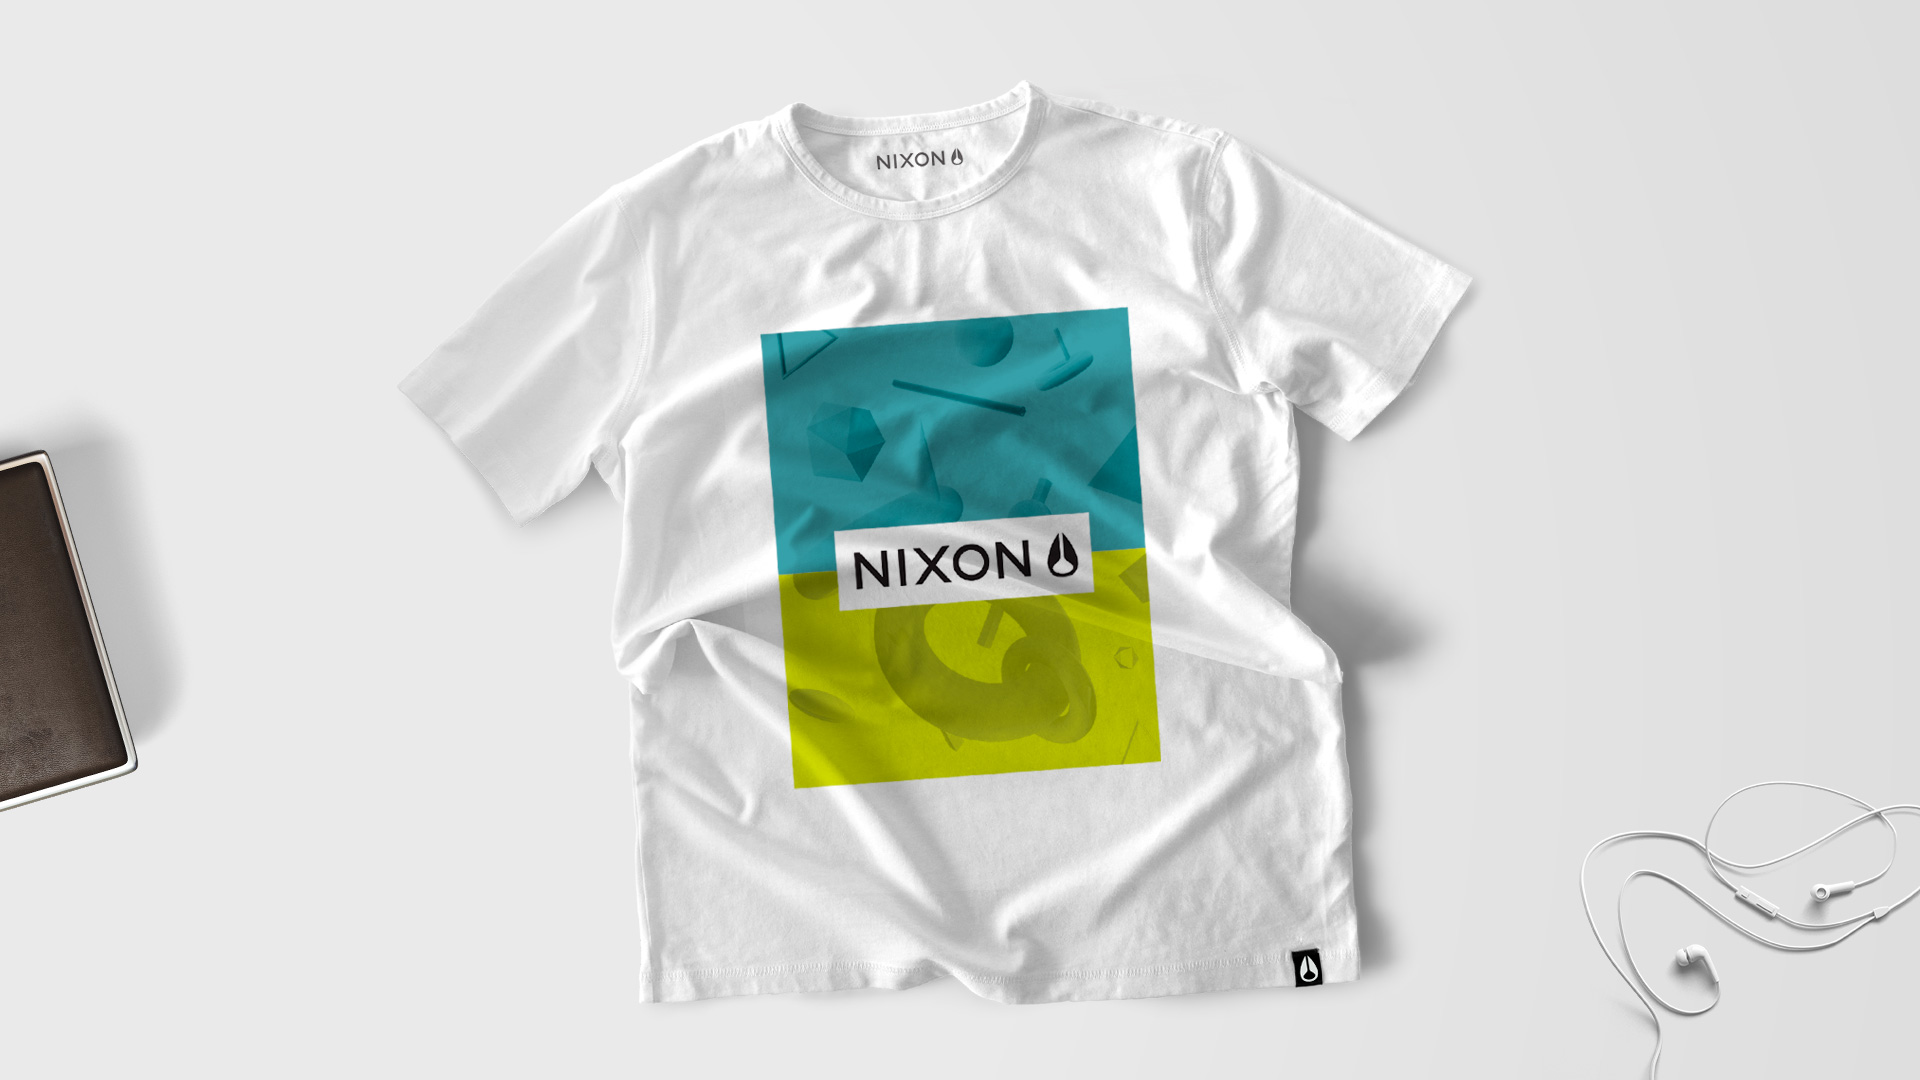 5_advertising_design_graphic_nixon